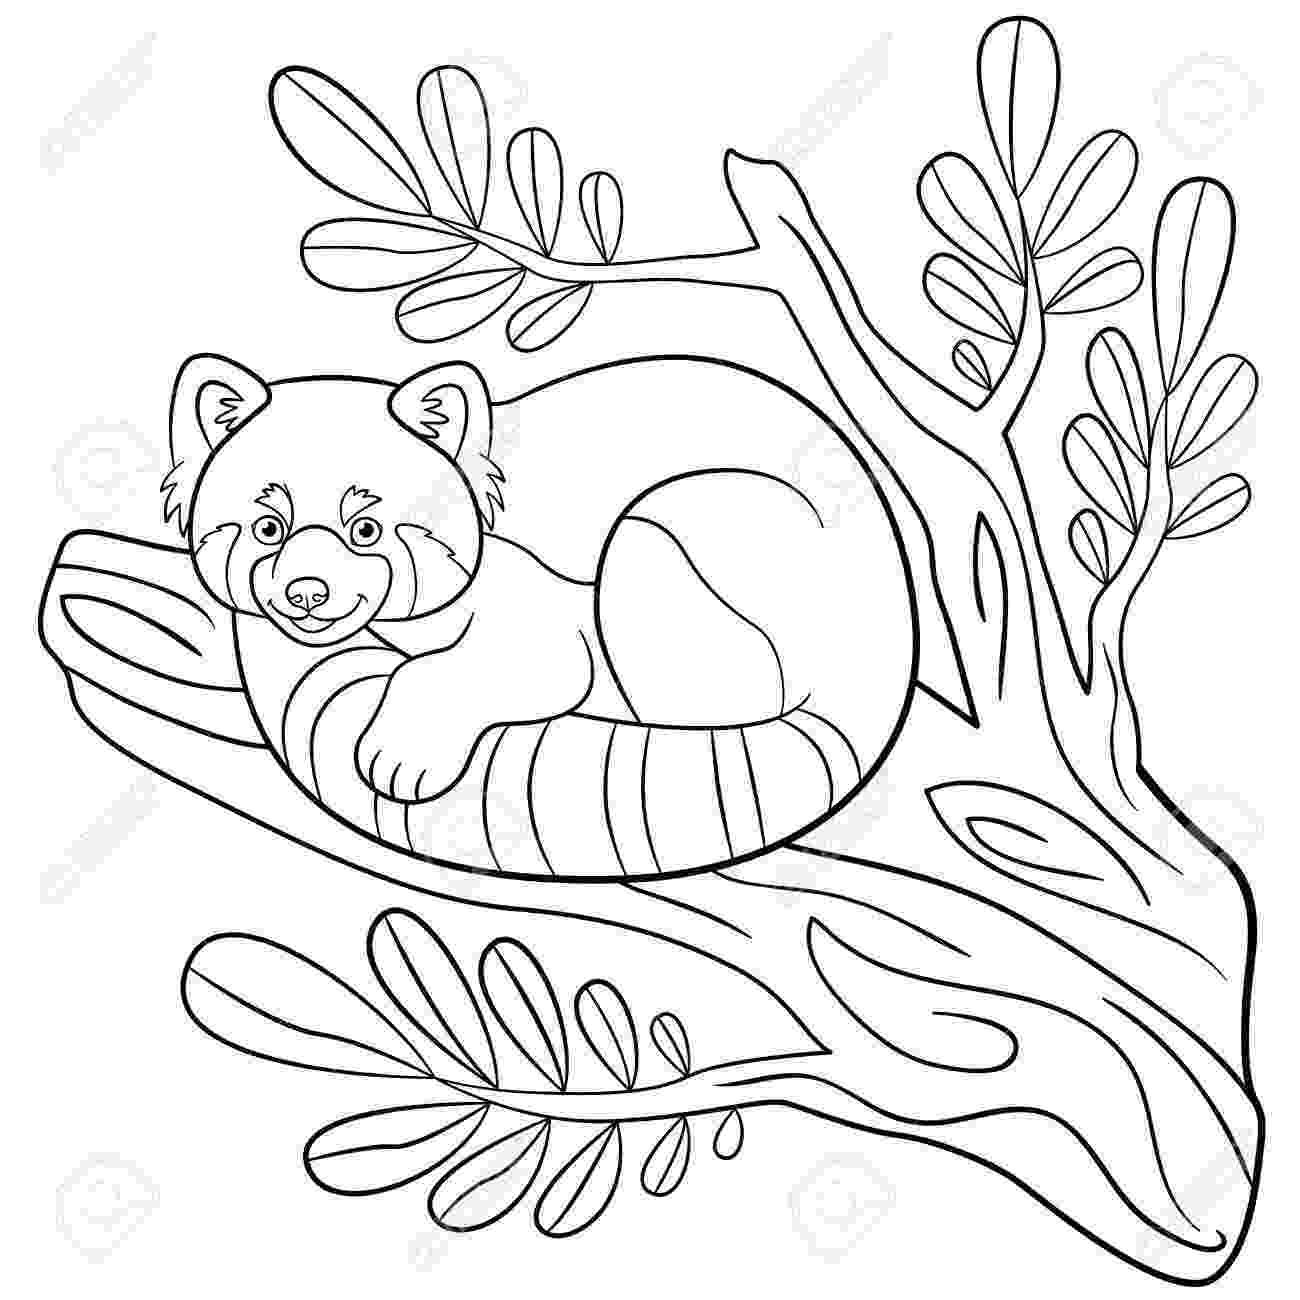 red panda coloring pages red panda on tree coloring page free printable coloring coloring red panda pages